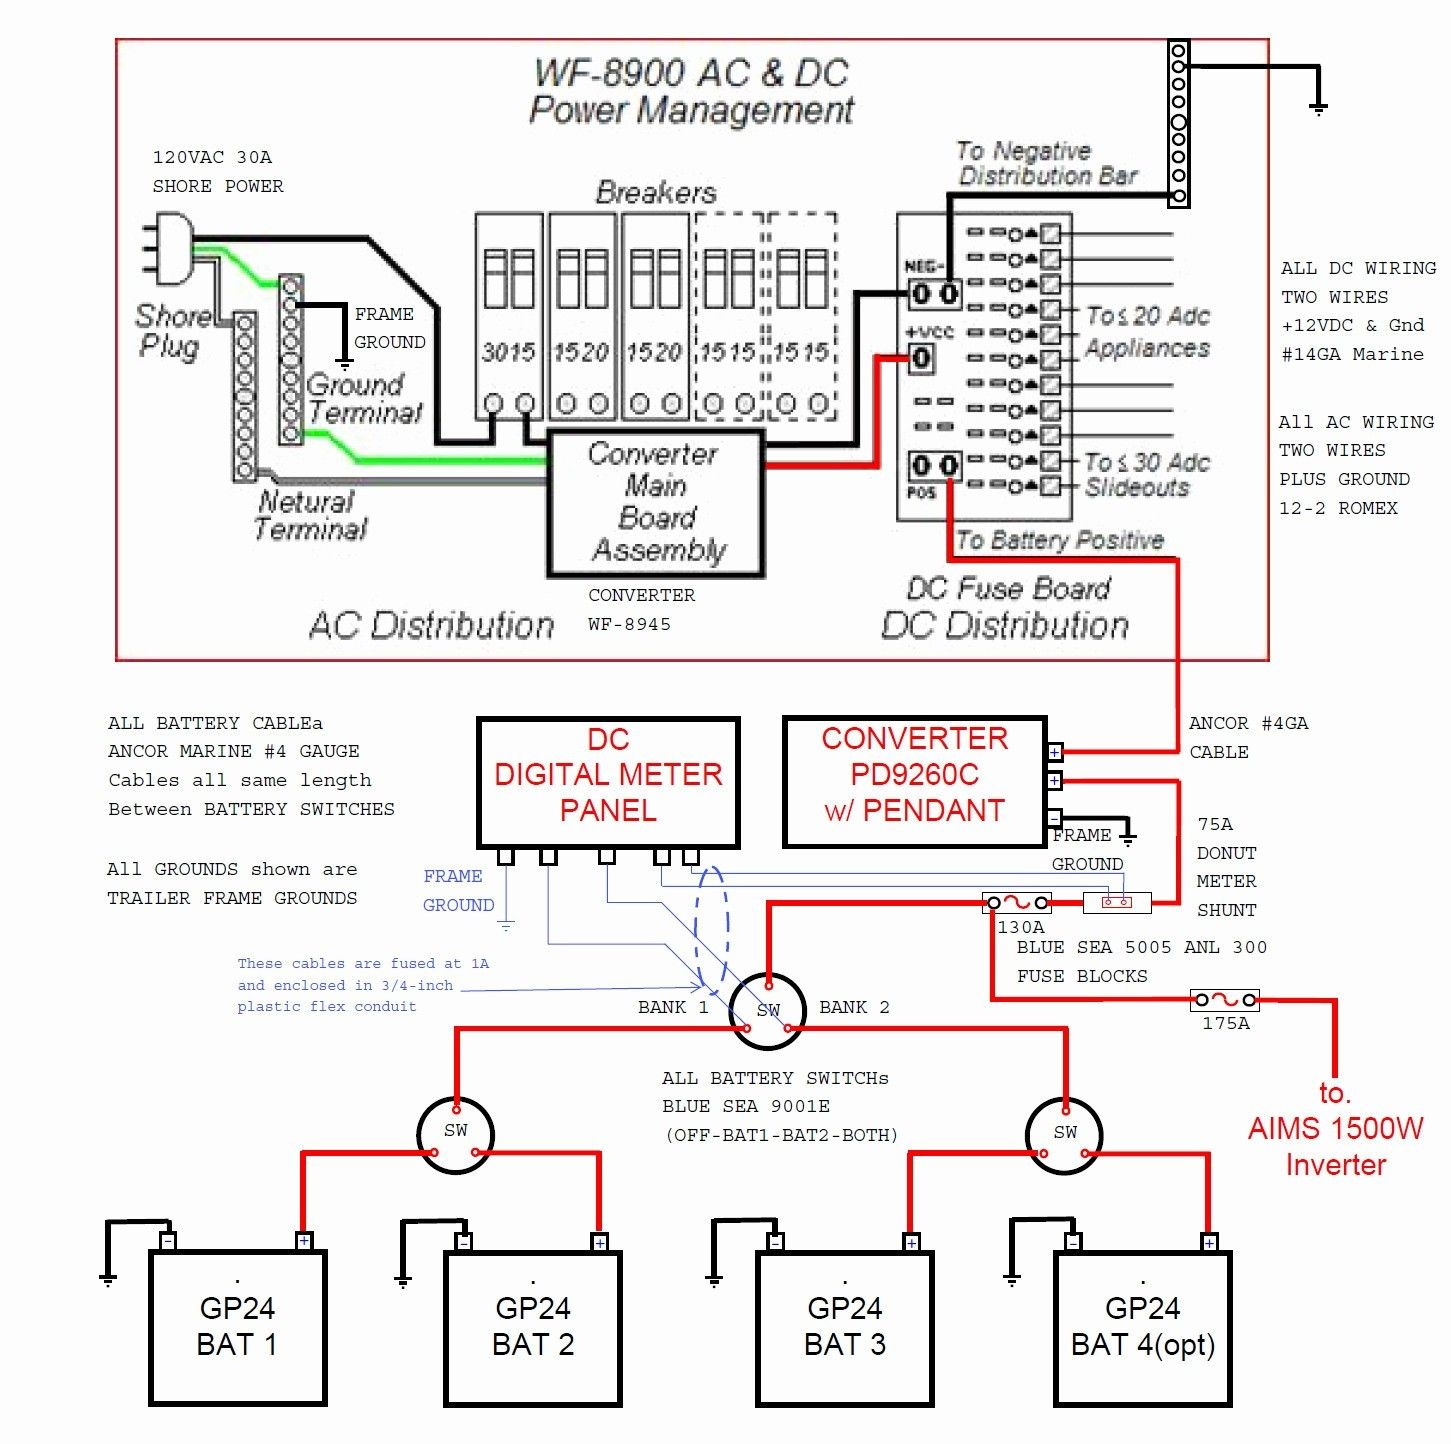 30 amp rv plug wiring diagram inspirational wiring diagram for rv30 amp rv plug wiring diagram [ 1451 x 1444 Pixel ]